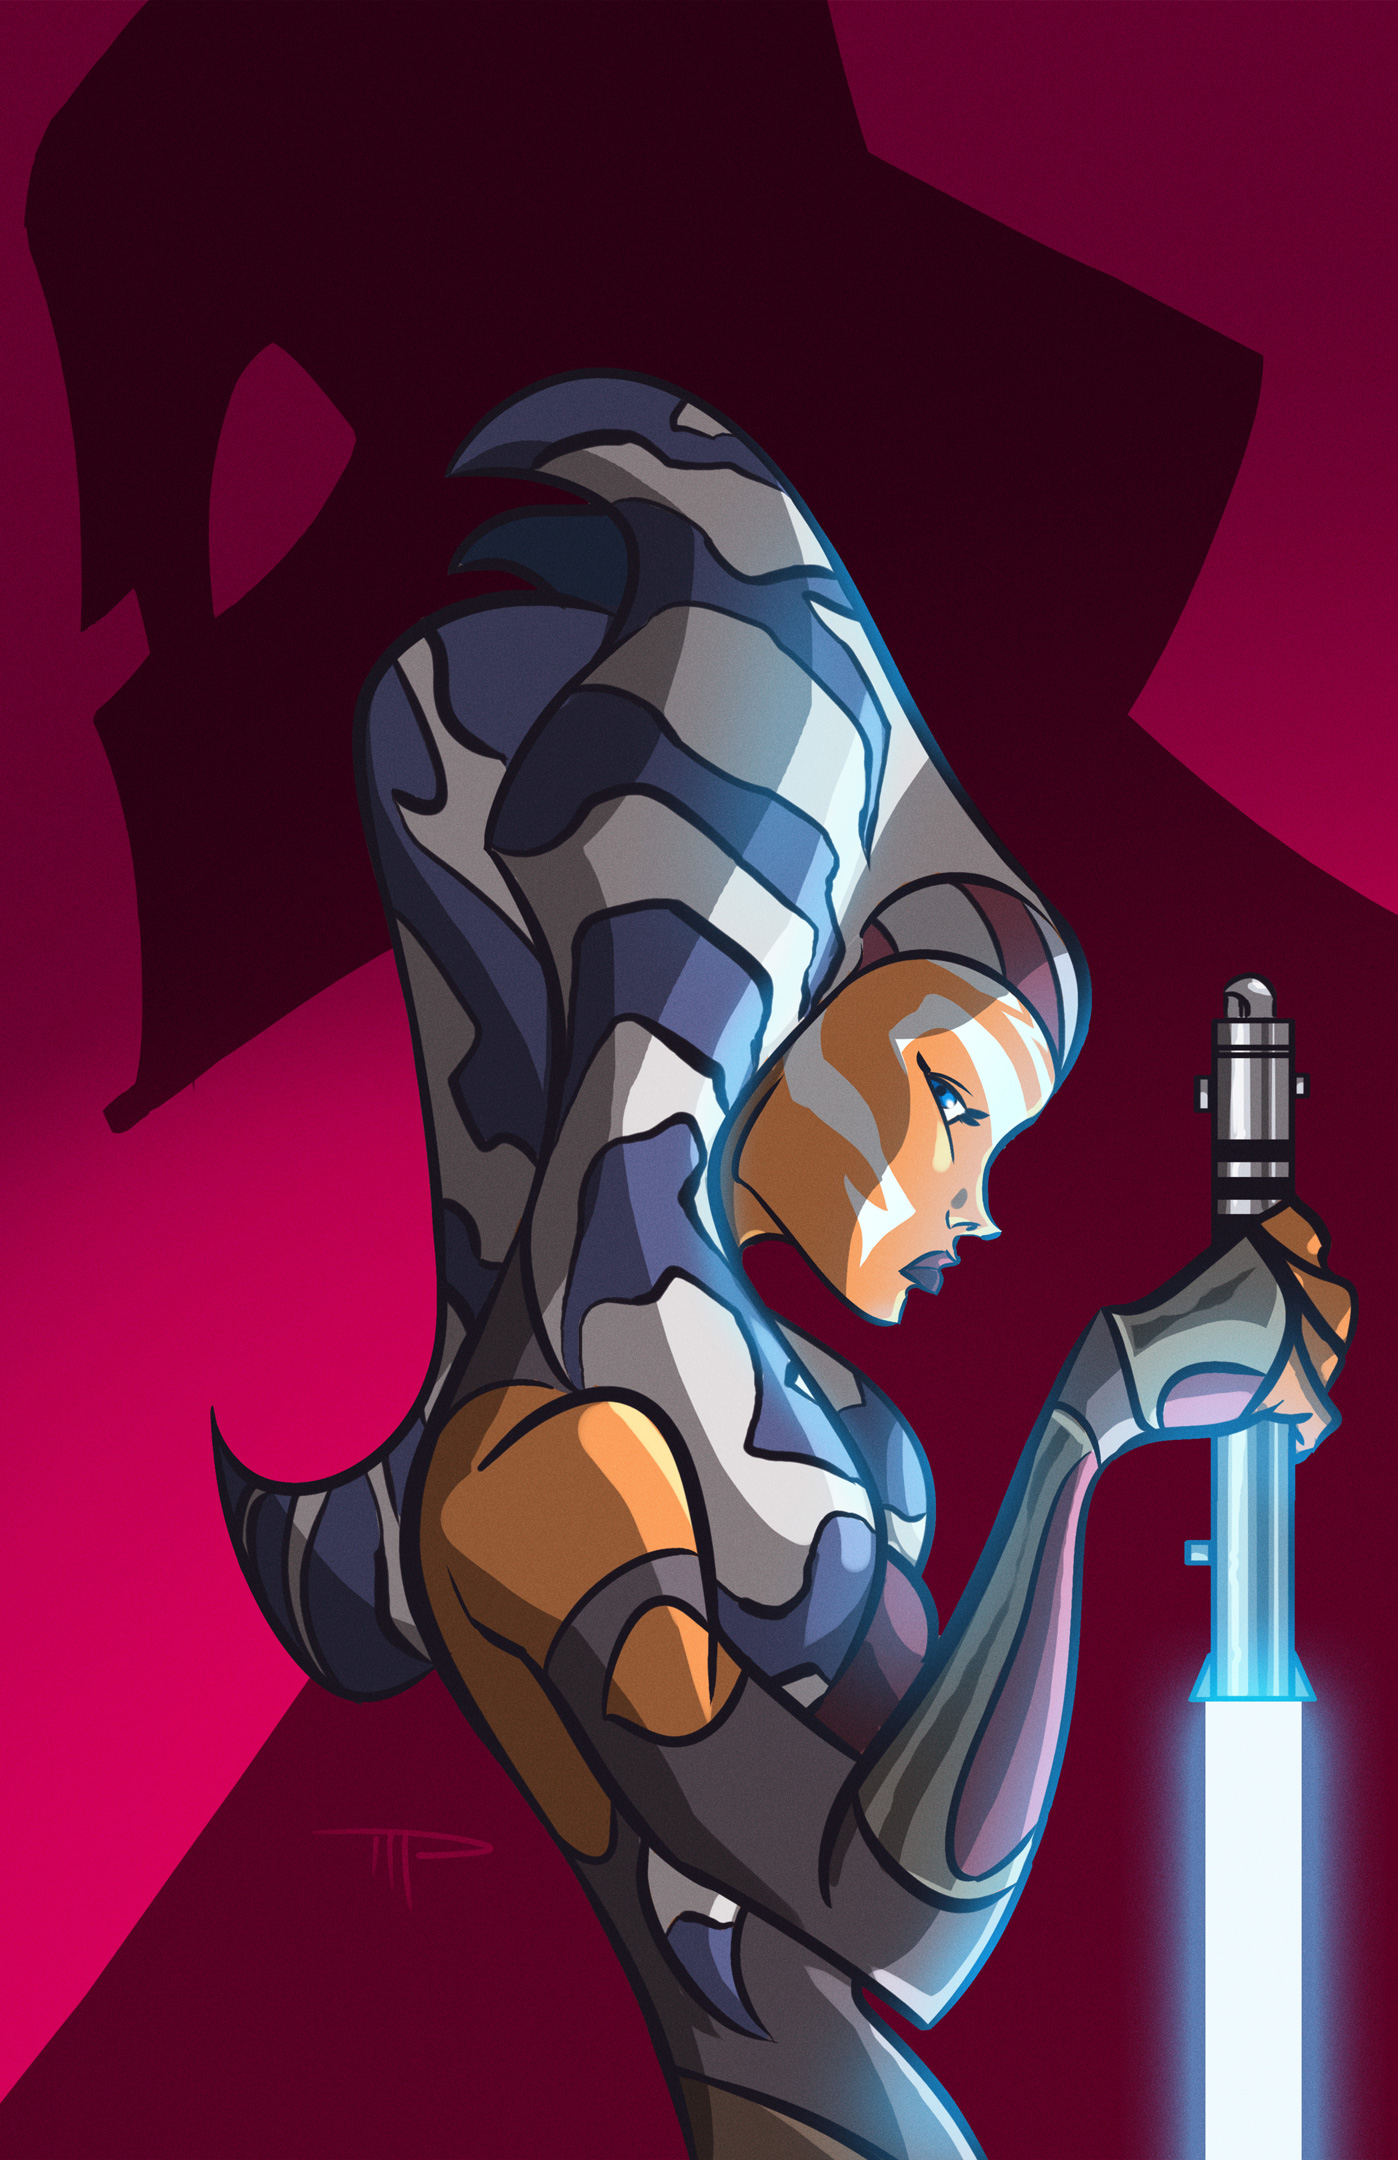 Announcing The Star Wars Rebels Season Two Fan Art Contest